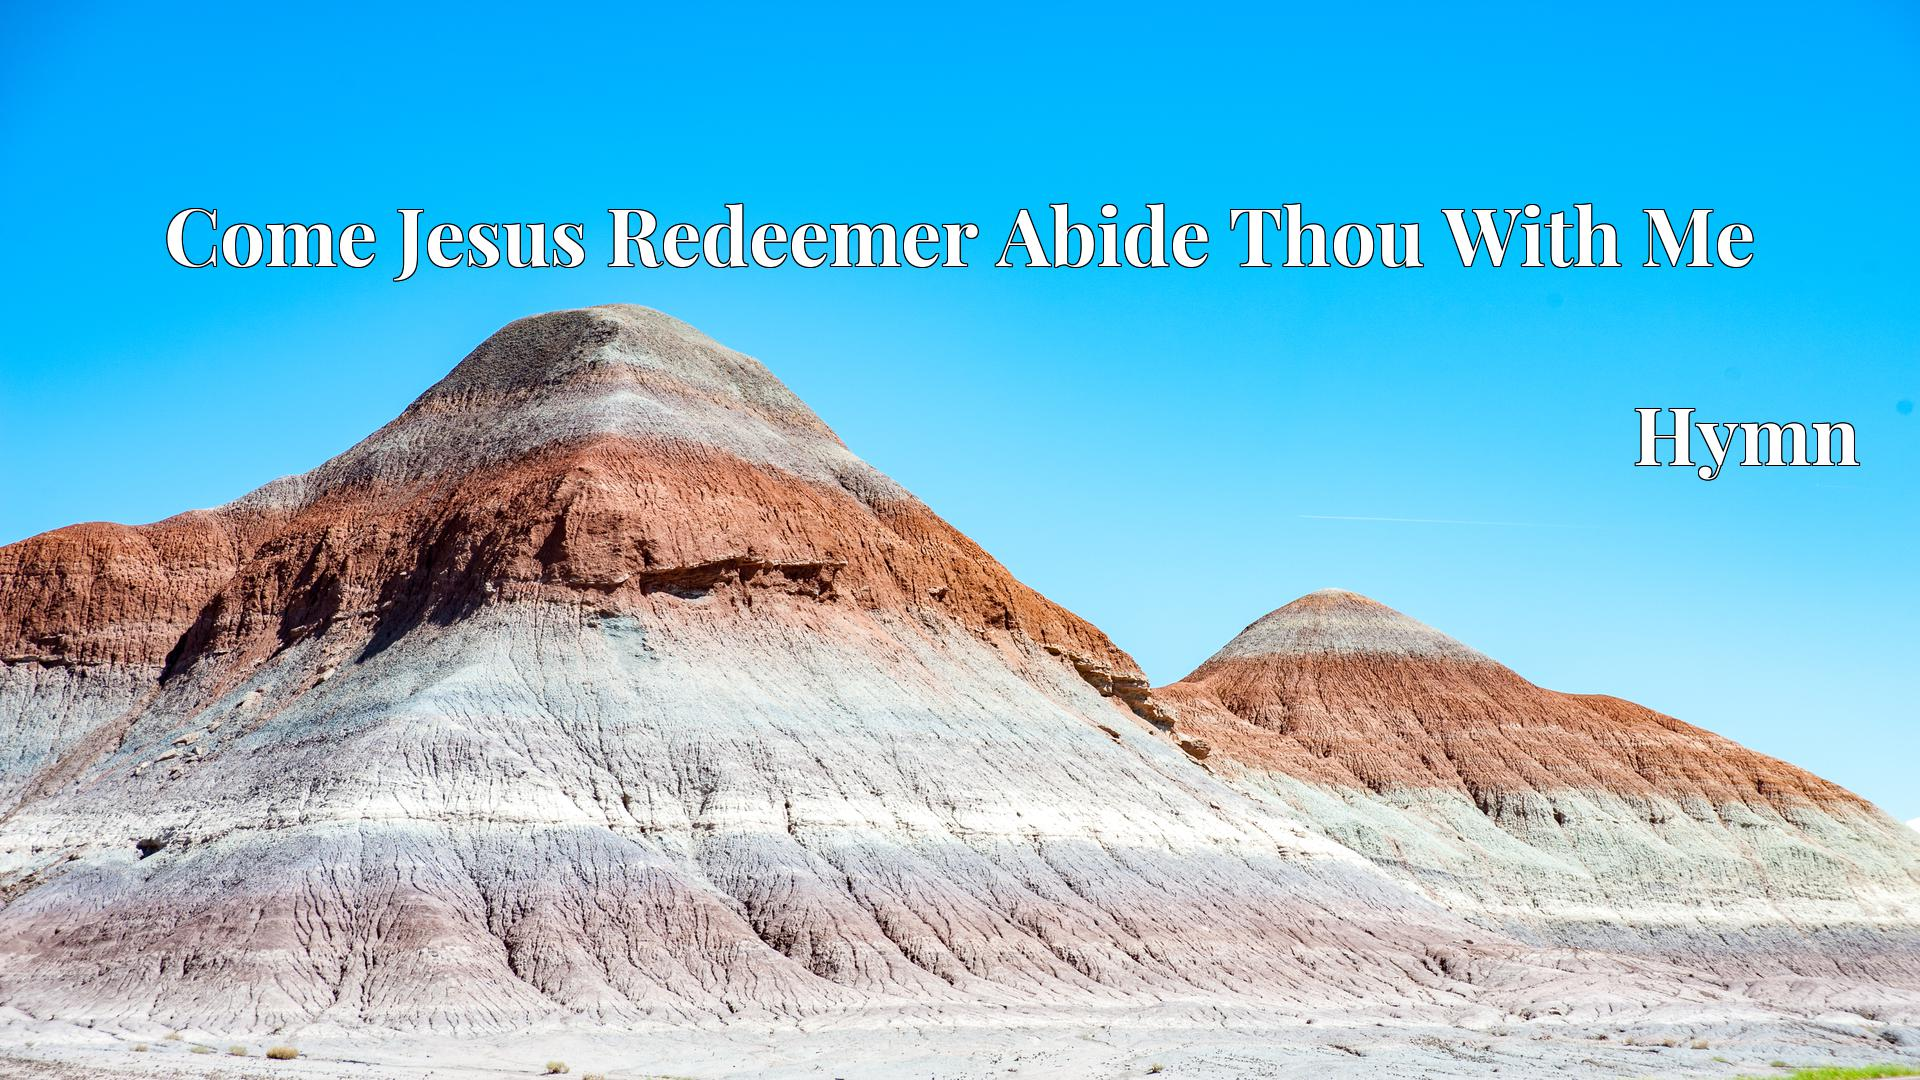 Come Jesus Redeemer Abide Thou With Me - Hymn